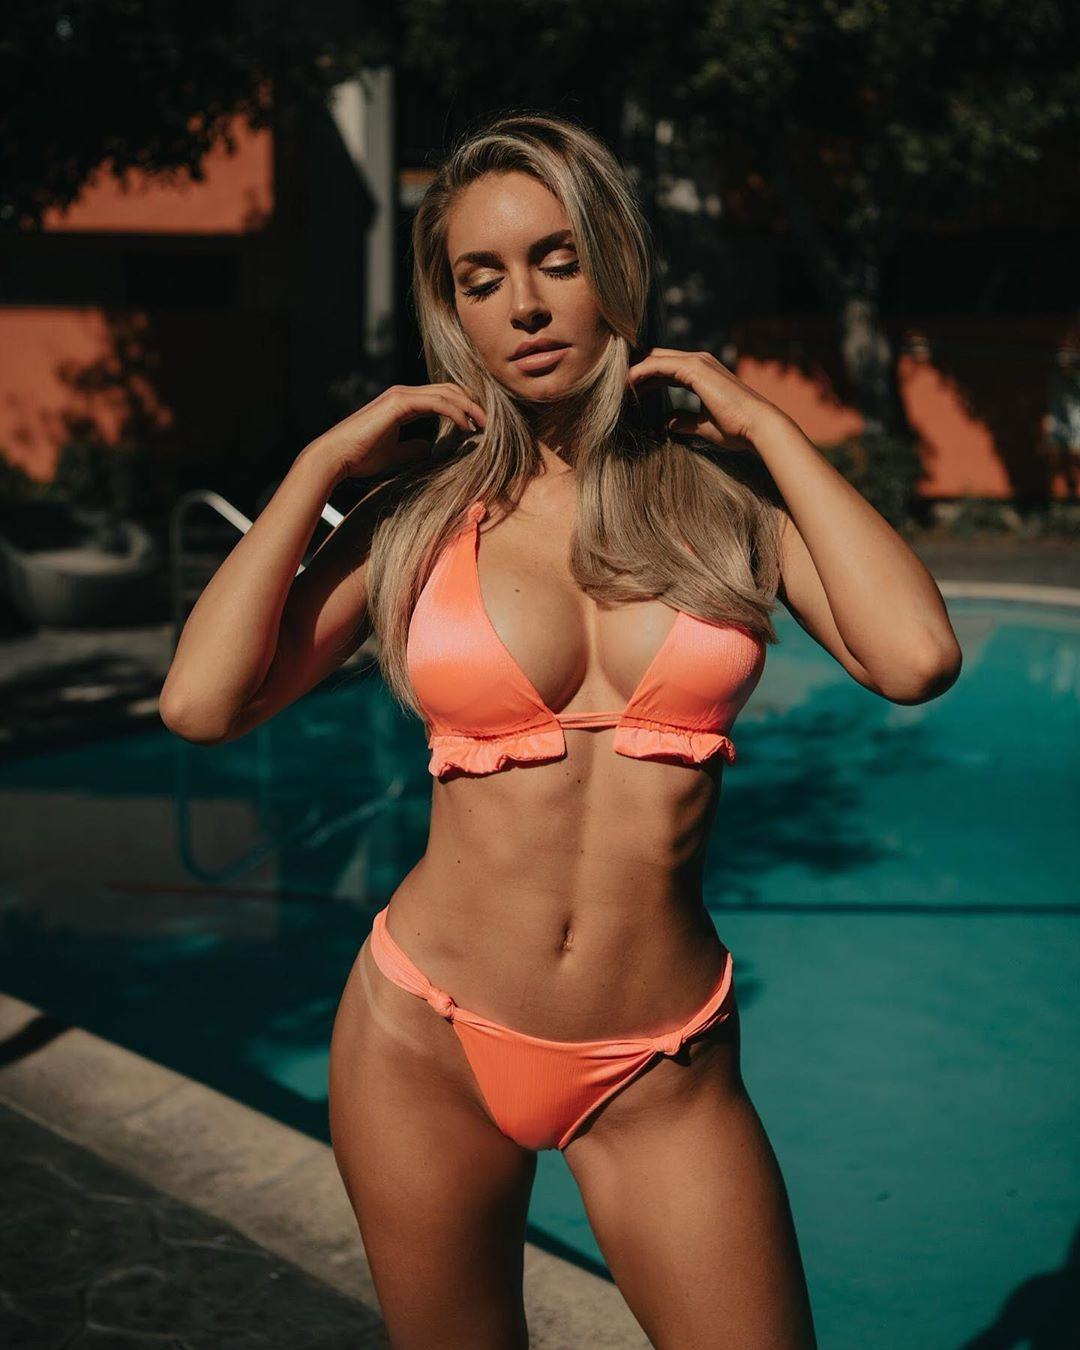 Anna Katharina Sexy Bikini Photos, Great Body